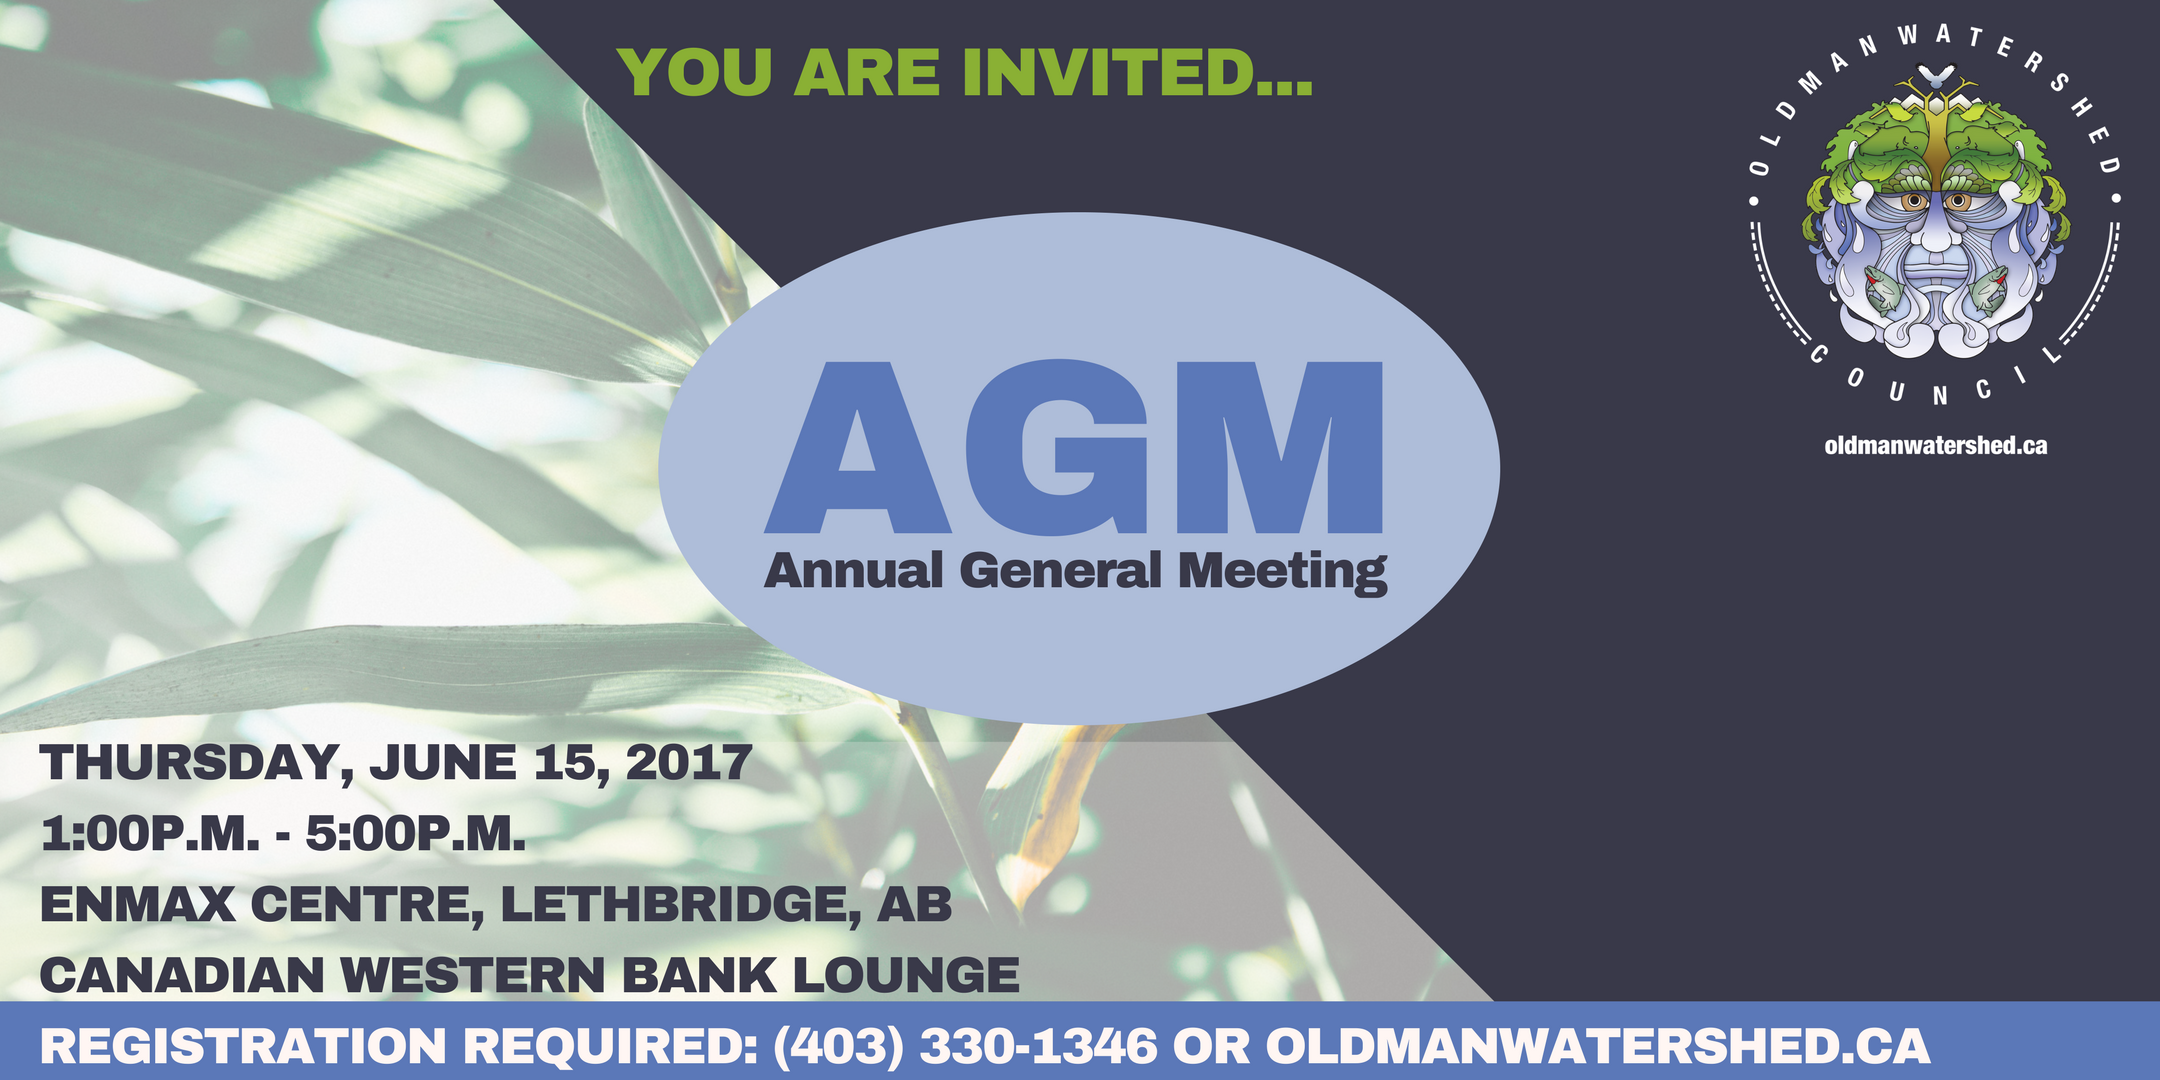 Please register here  http://owcagm2017.eventbrite.ca . Bring your kids, students and friends. It could change their life.